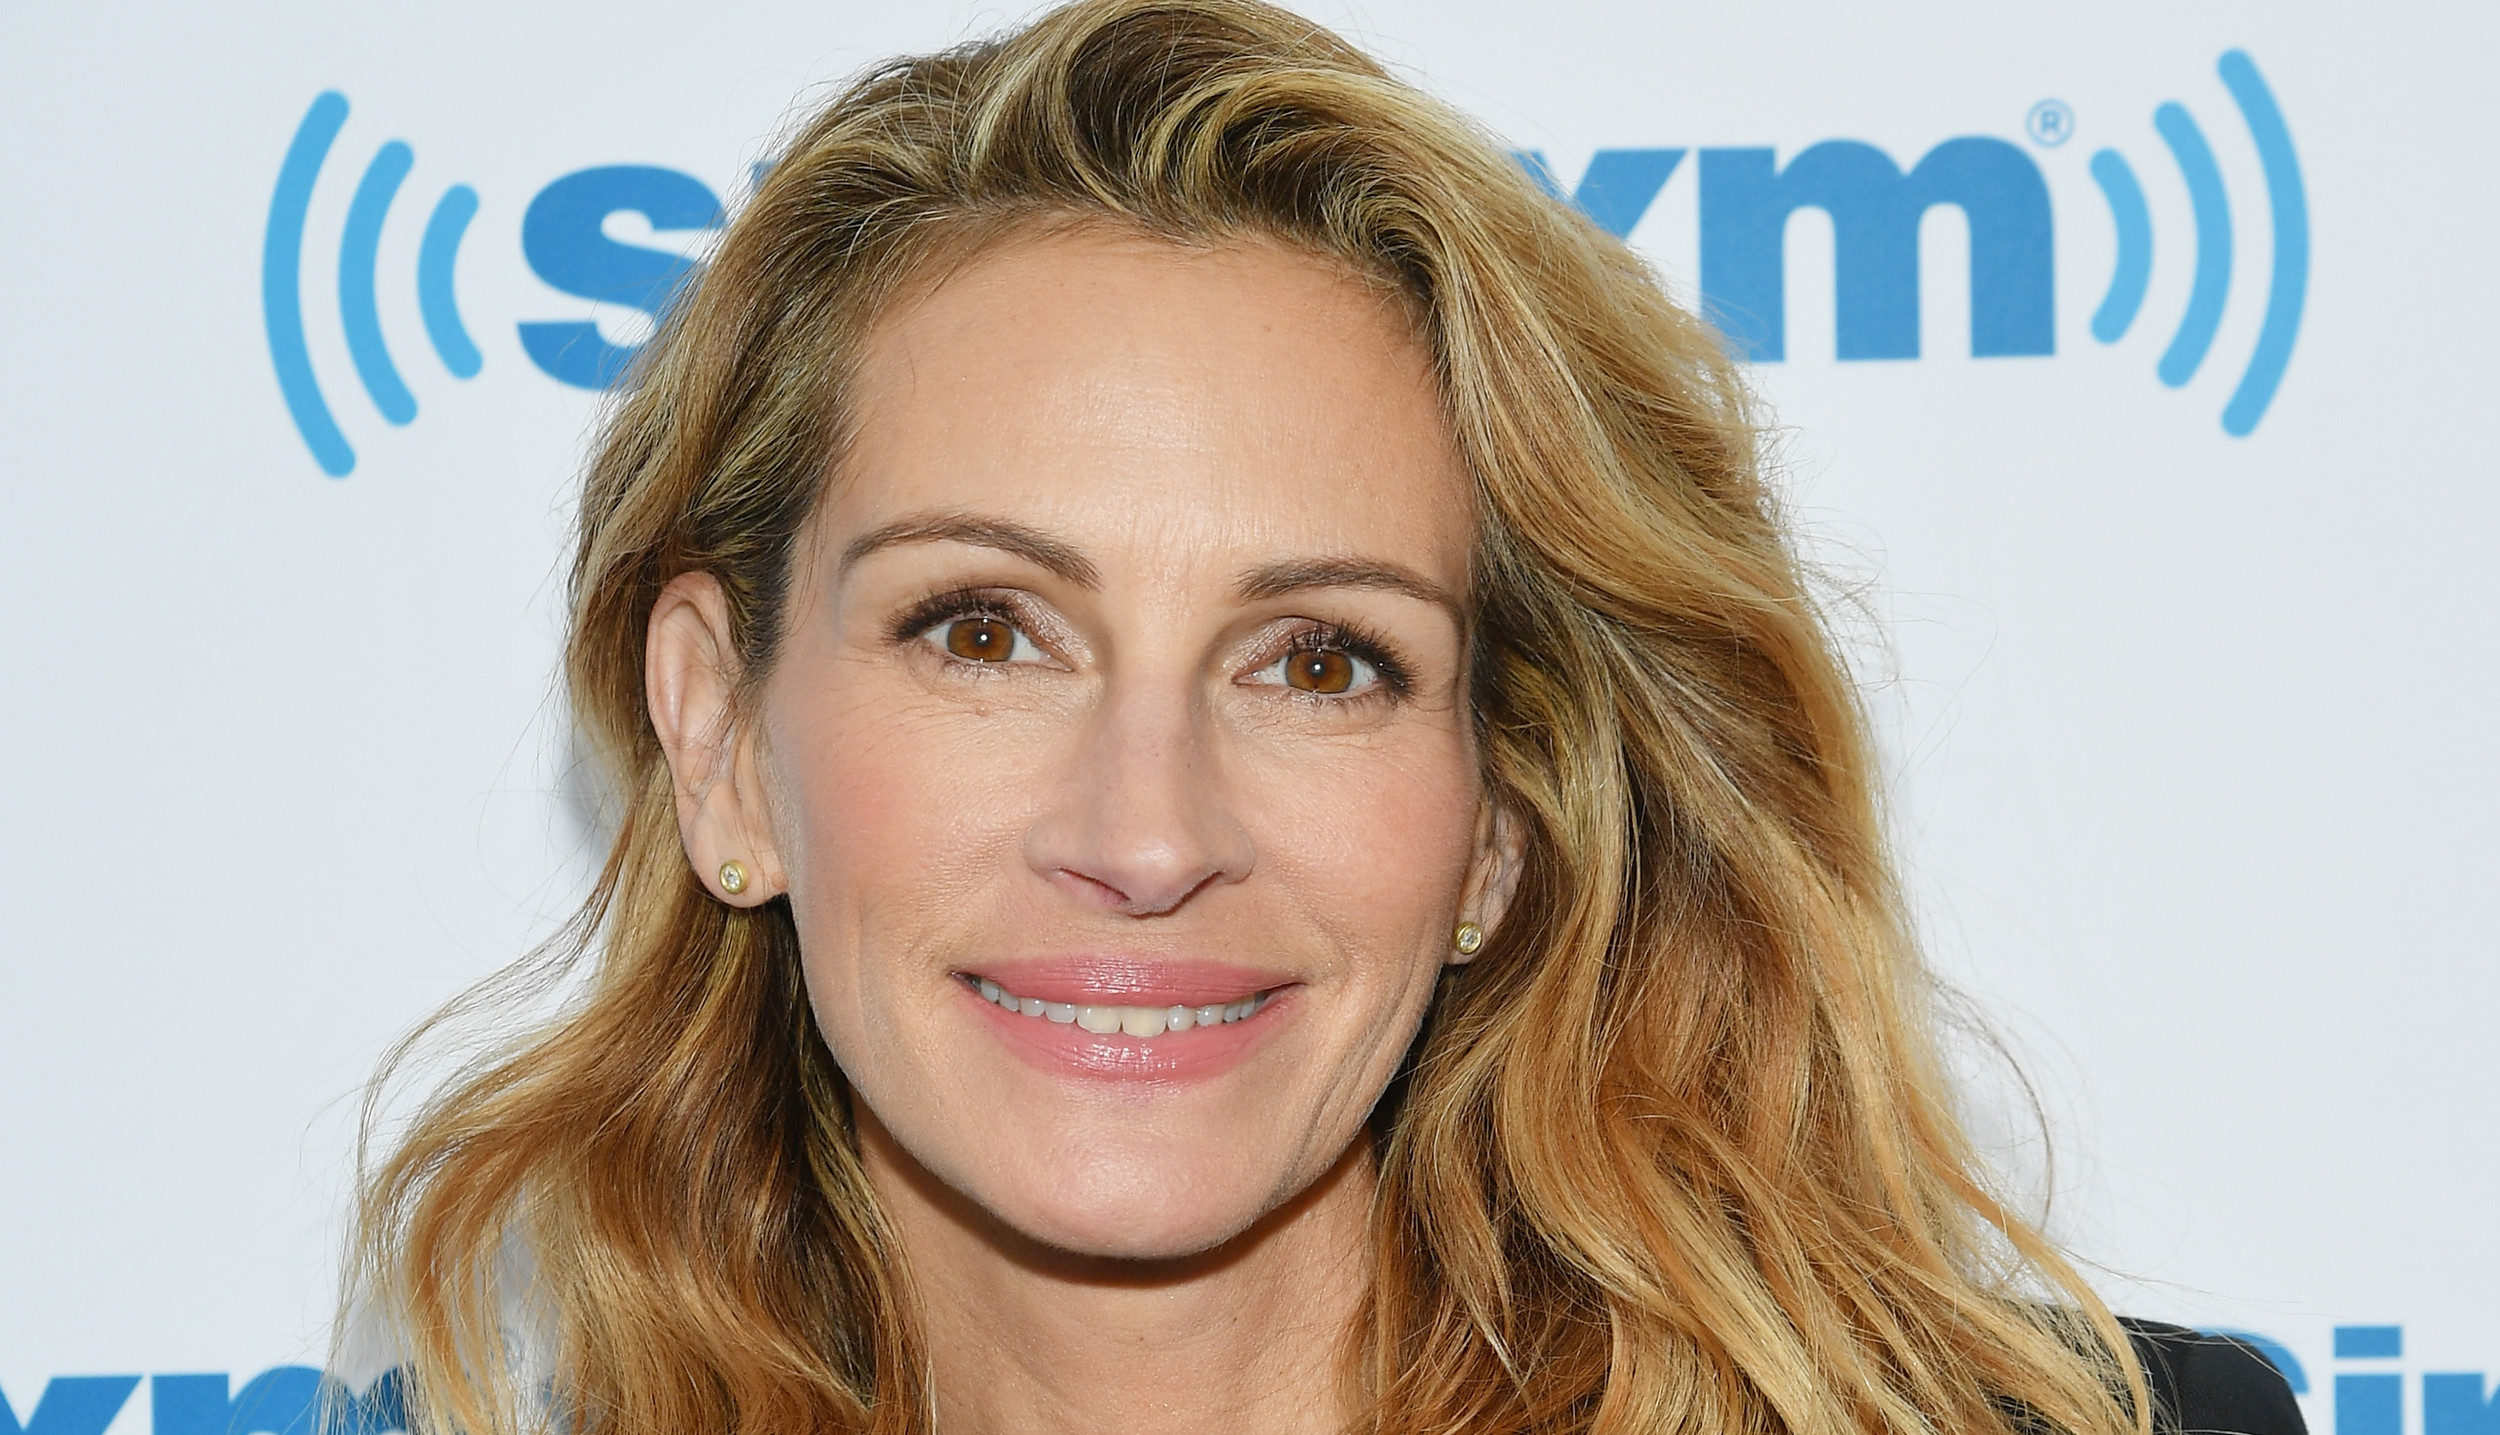 Julia Roberts Just Got on the Lob Train & You Have to See Her New 'Do